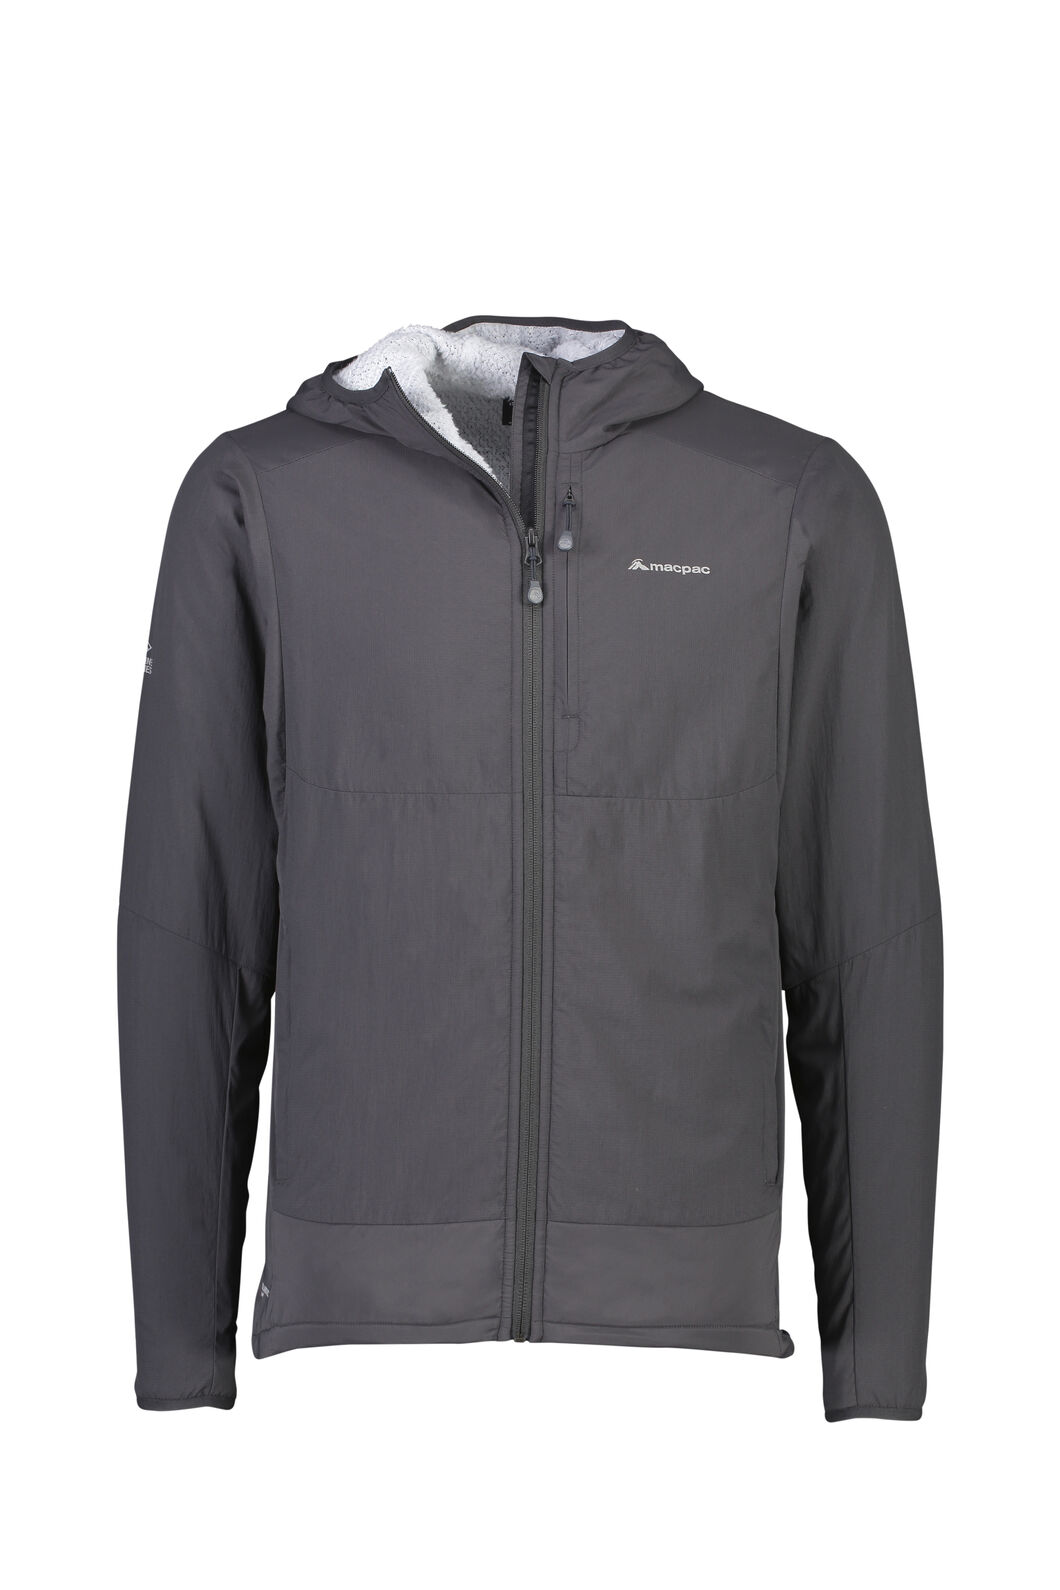 Macpac Pisa Polartec® Hooded Jacket - Men's, Phantom/Pearl, hi-res